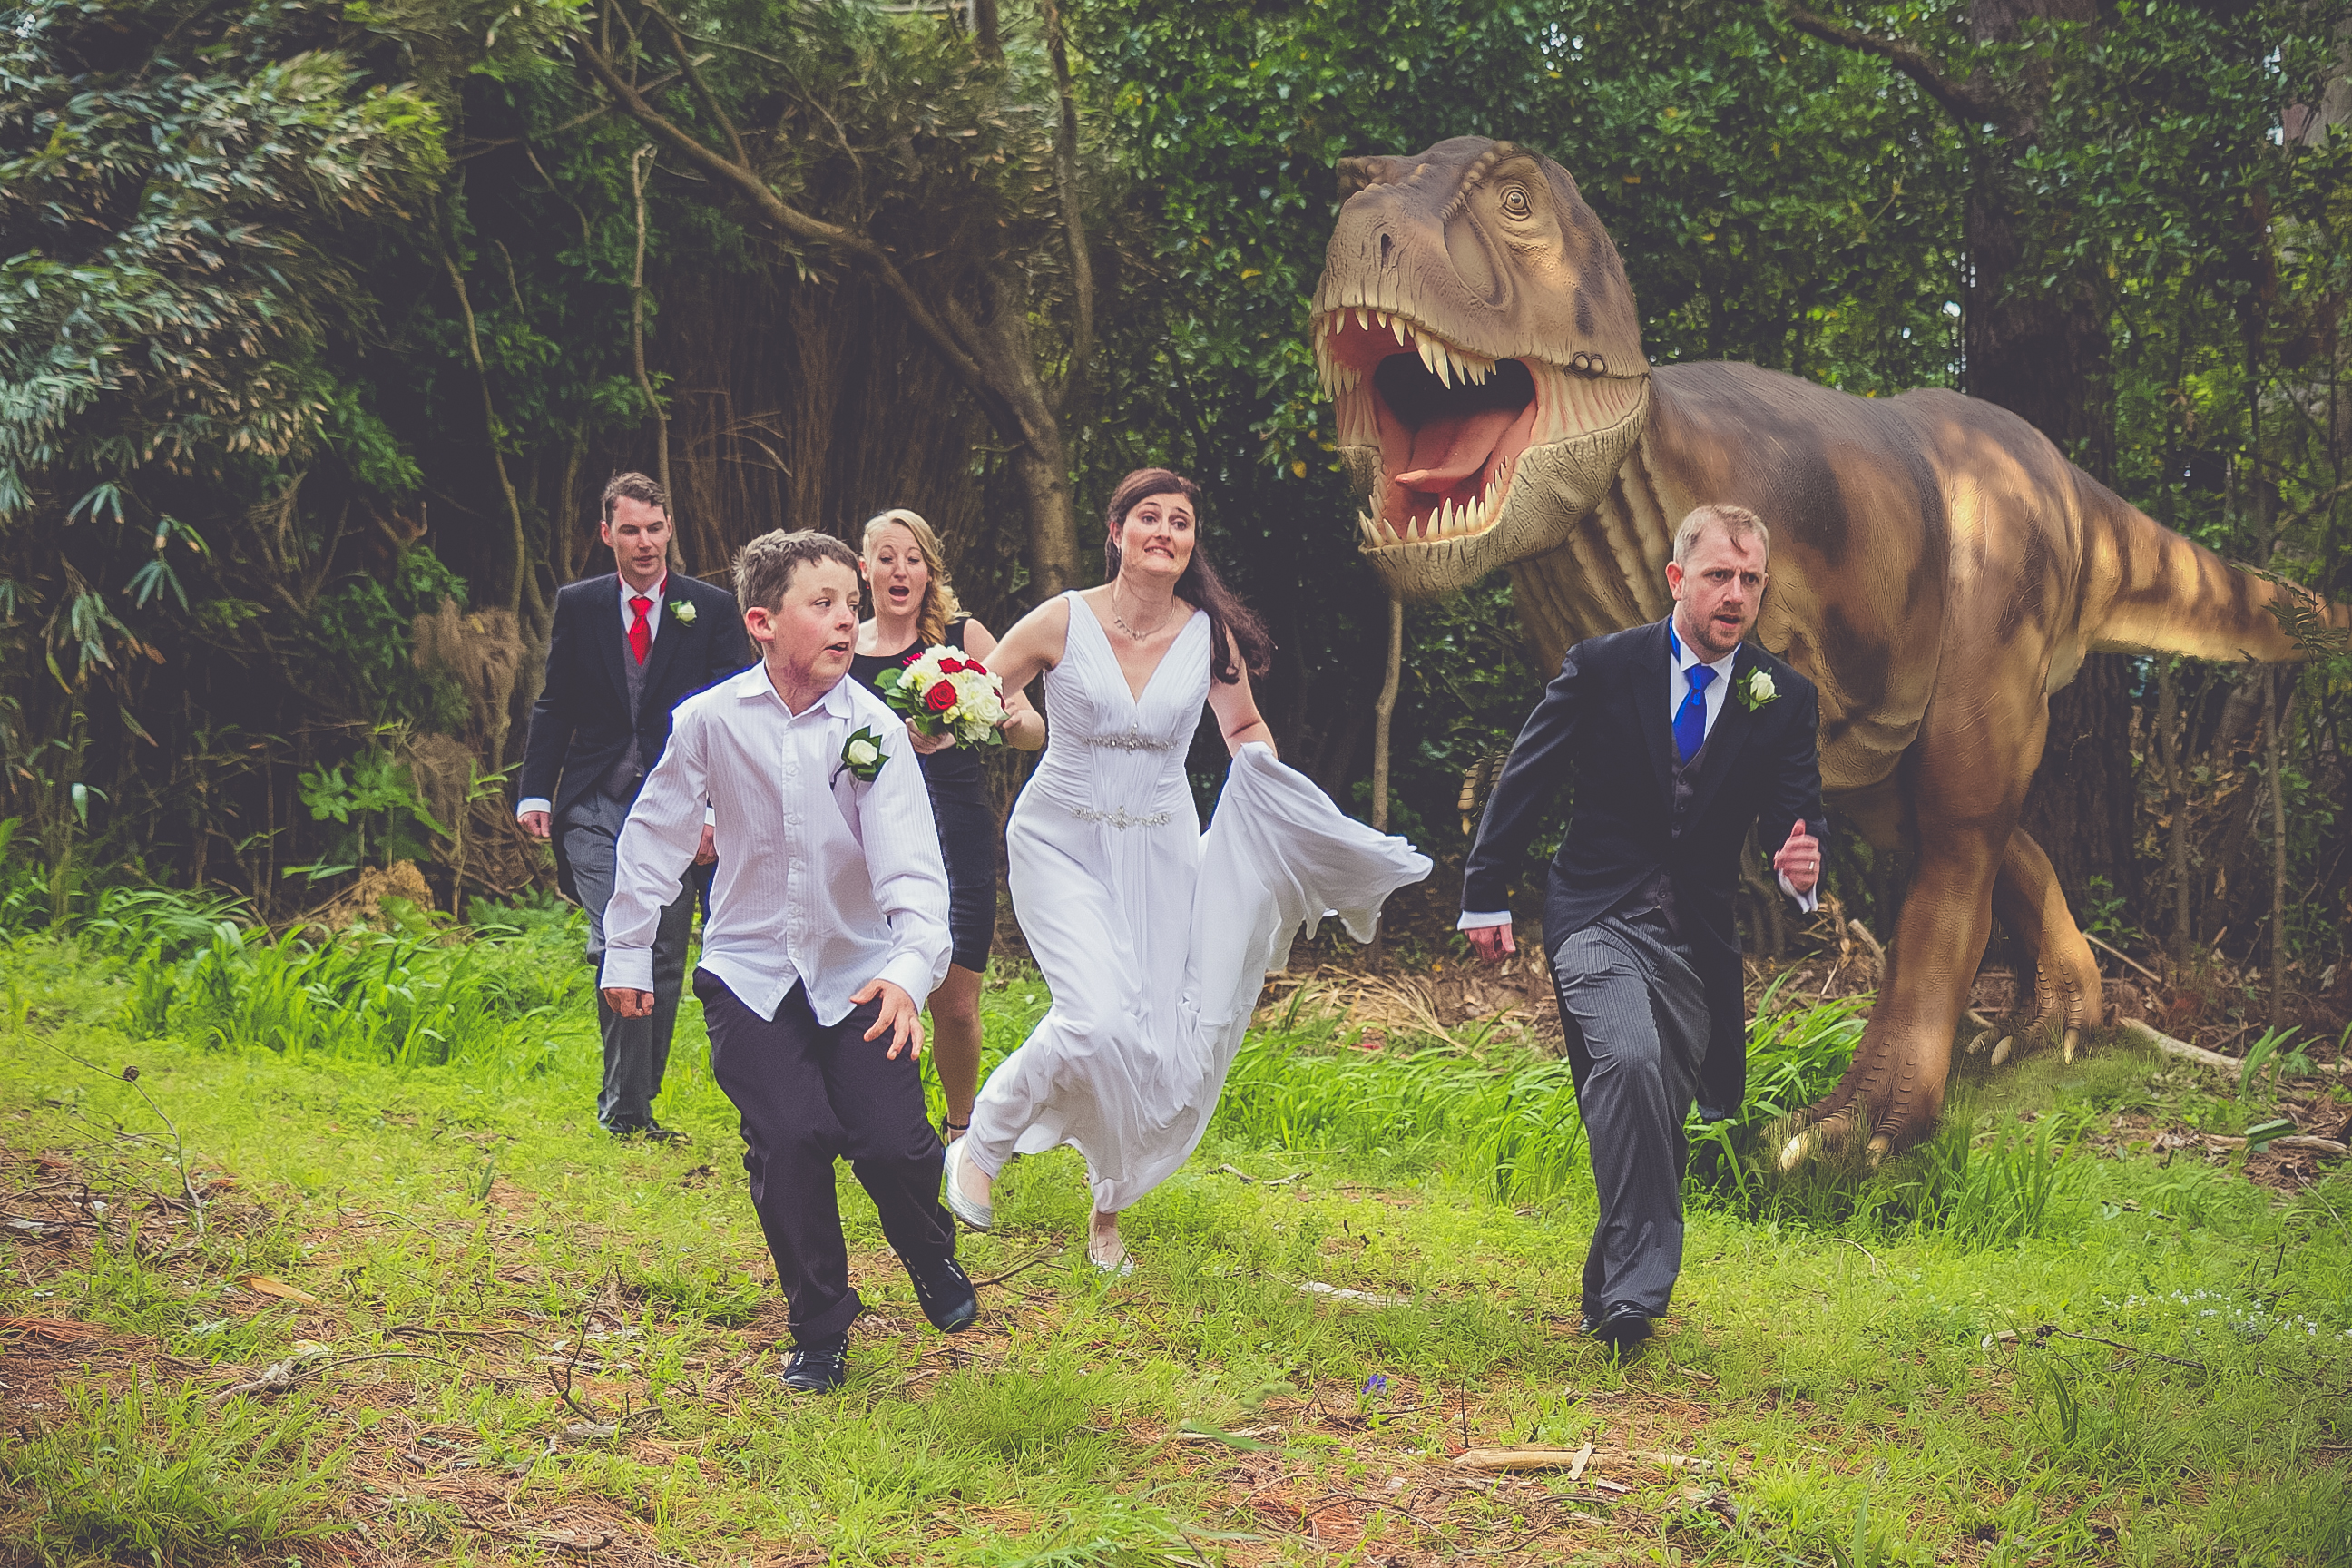 T Rex attacks!